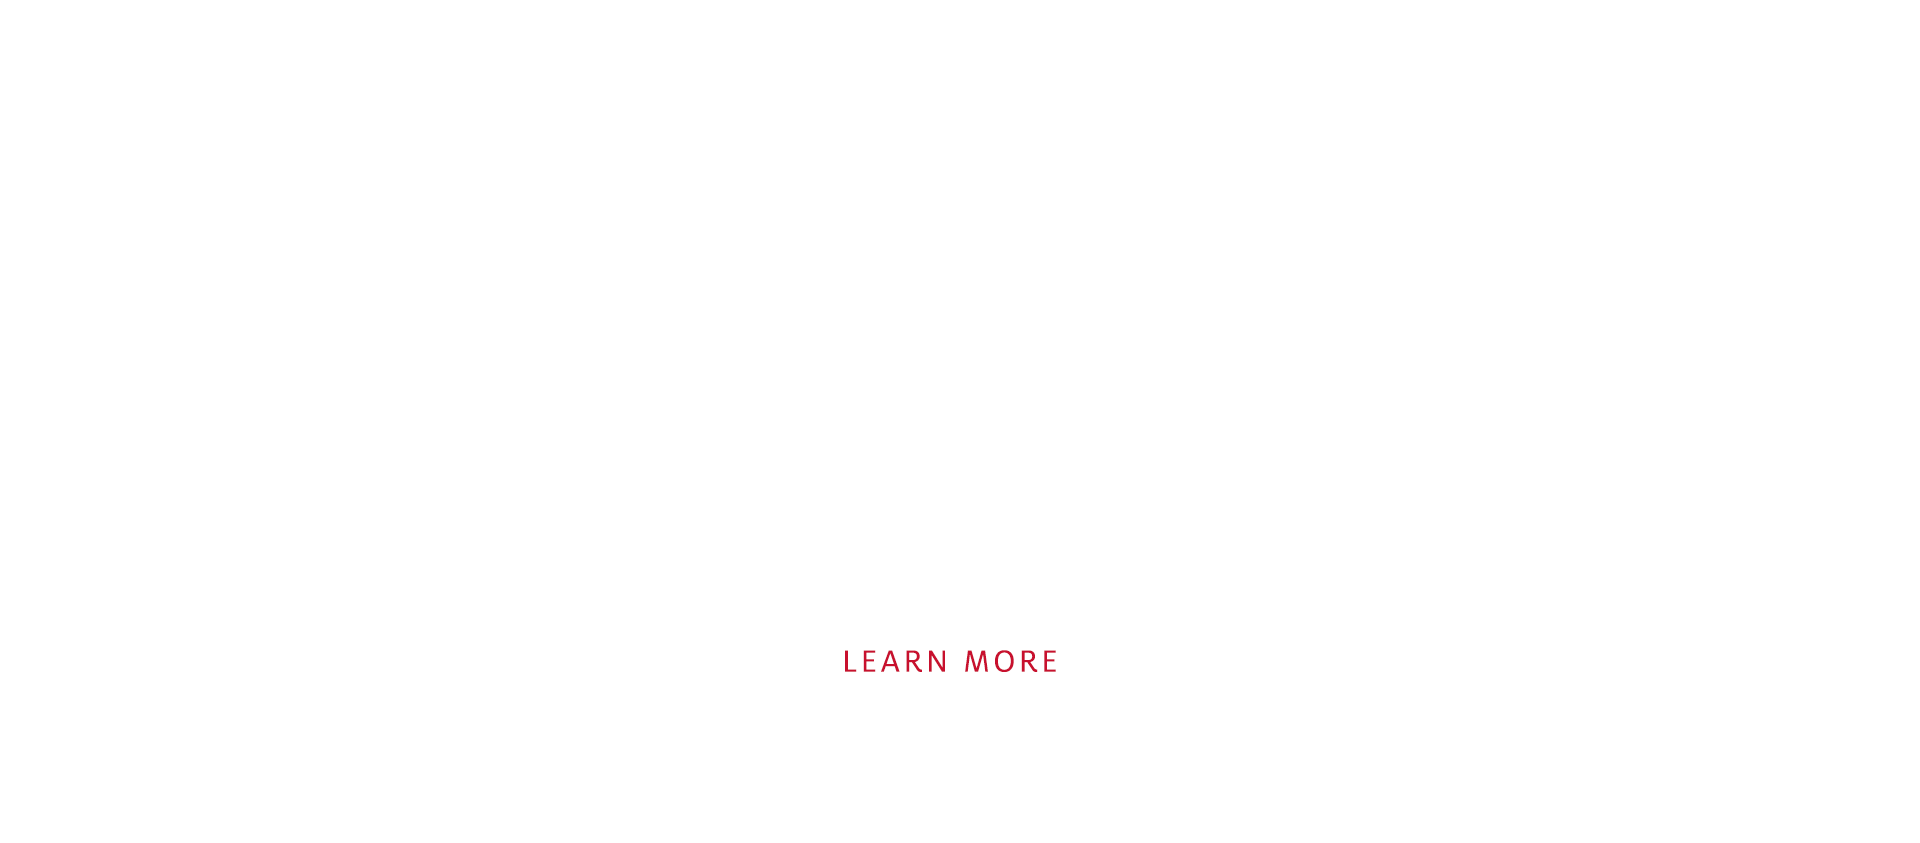 cougar-connection-series